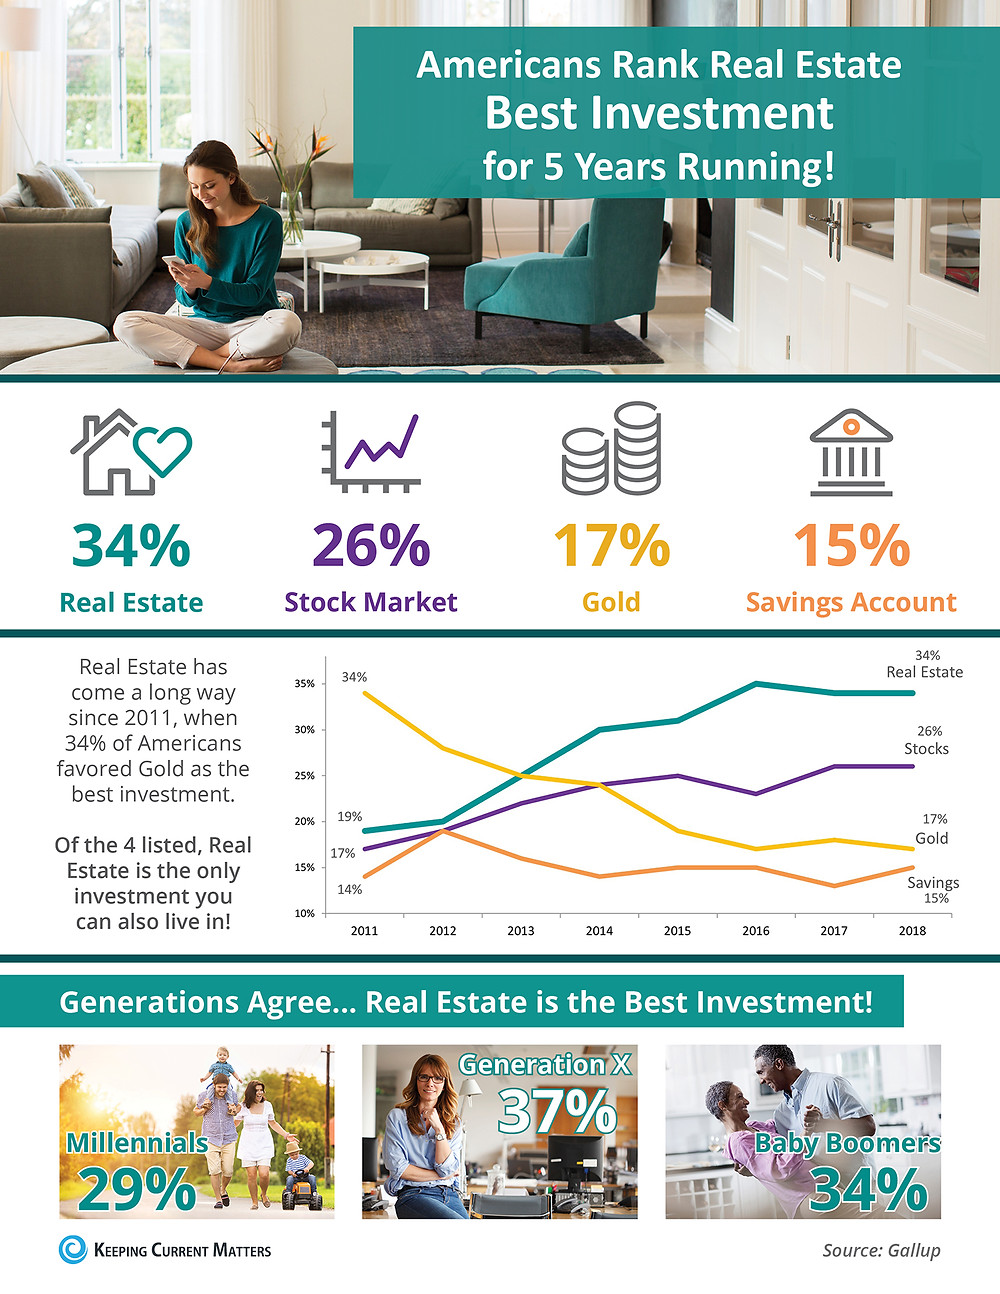 Americans Rank Real Estate Best Investment for 5 Years Running! [INFOGRAPHIC] | Keeping Current Matters